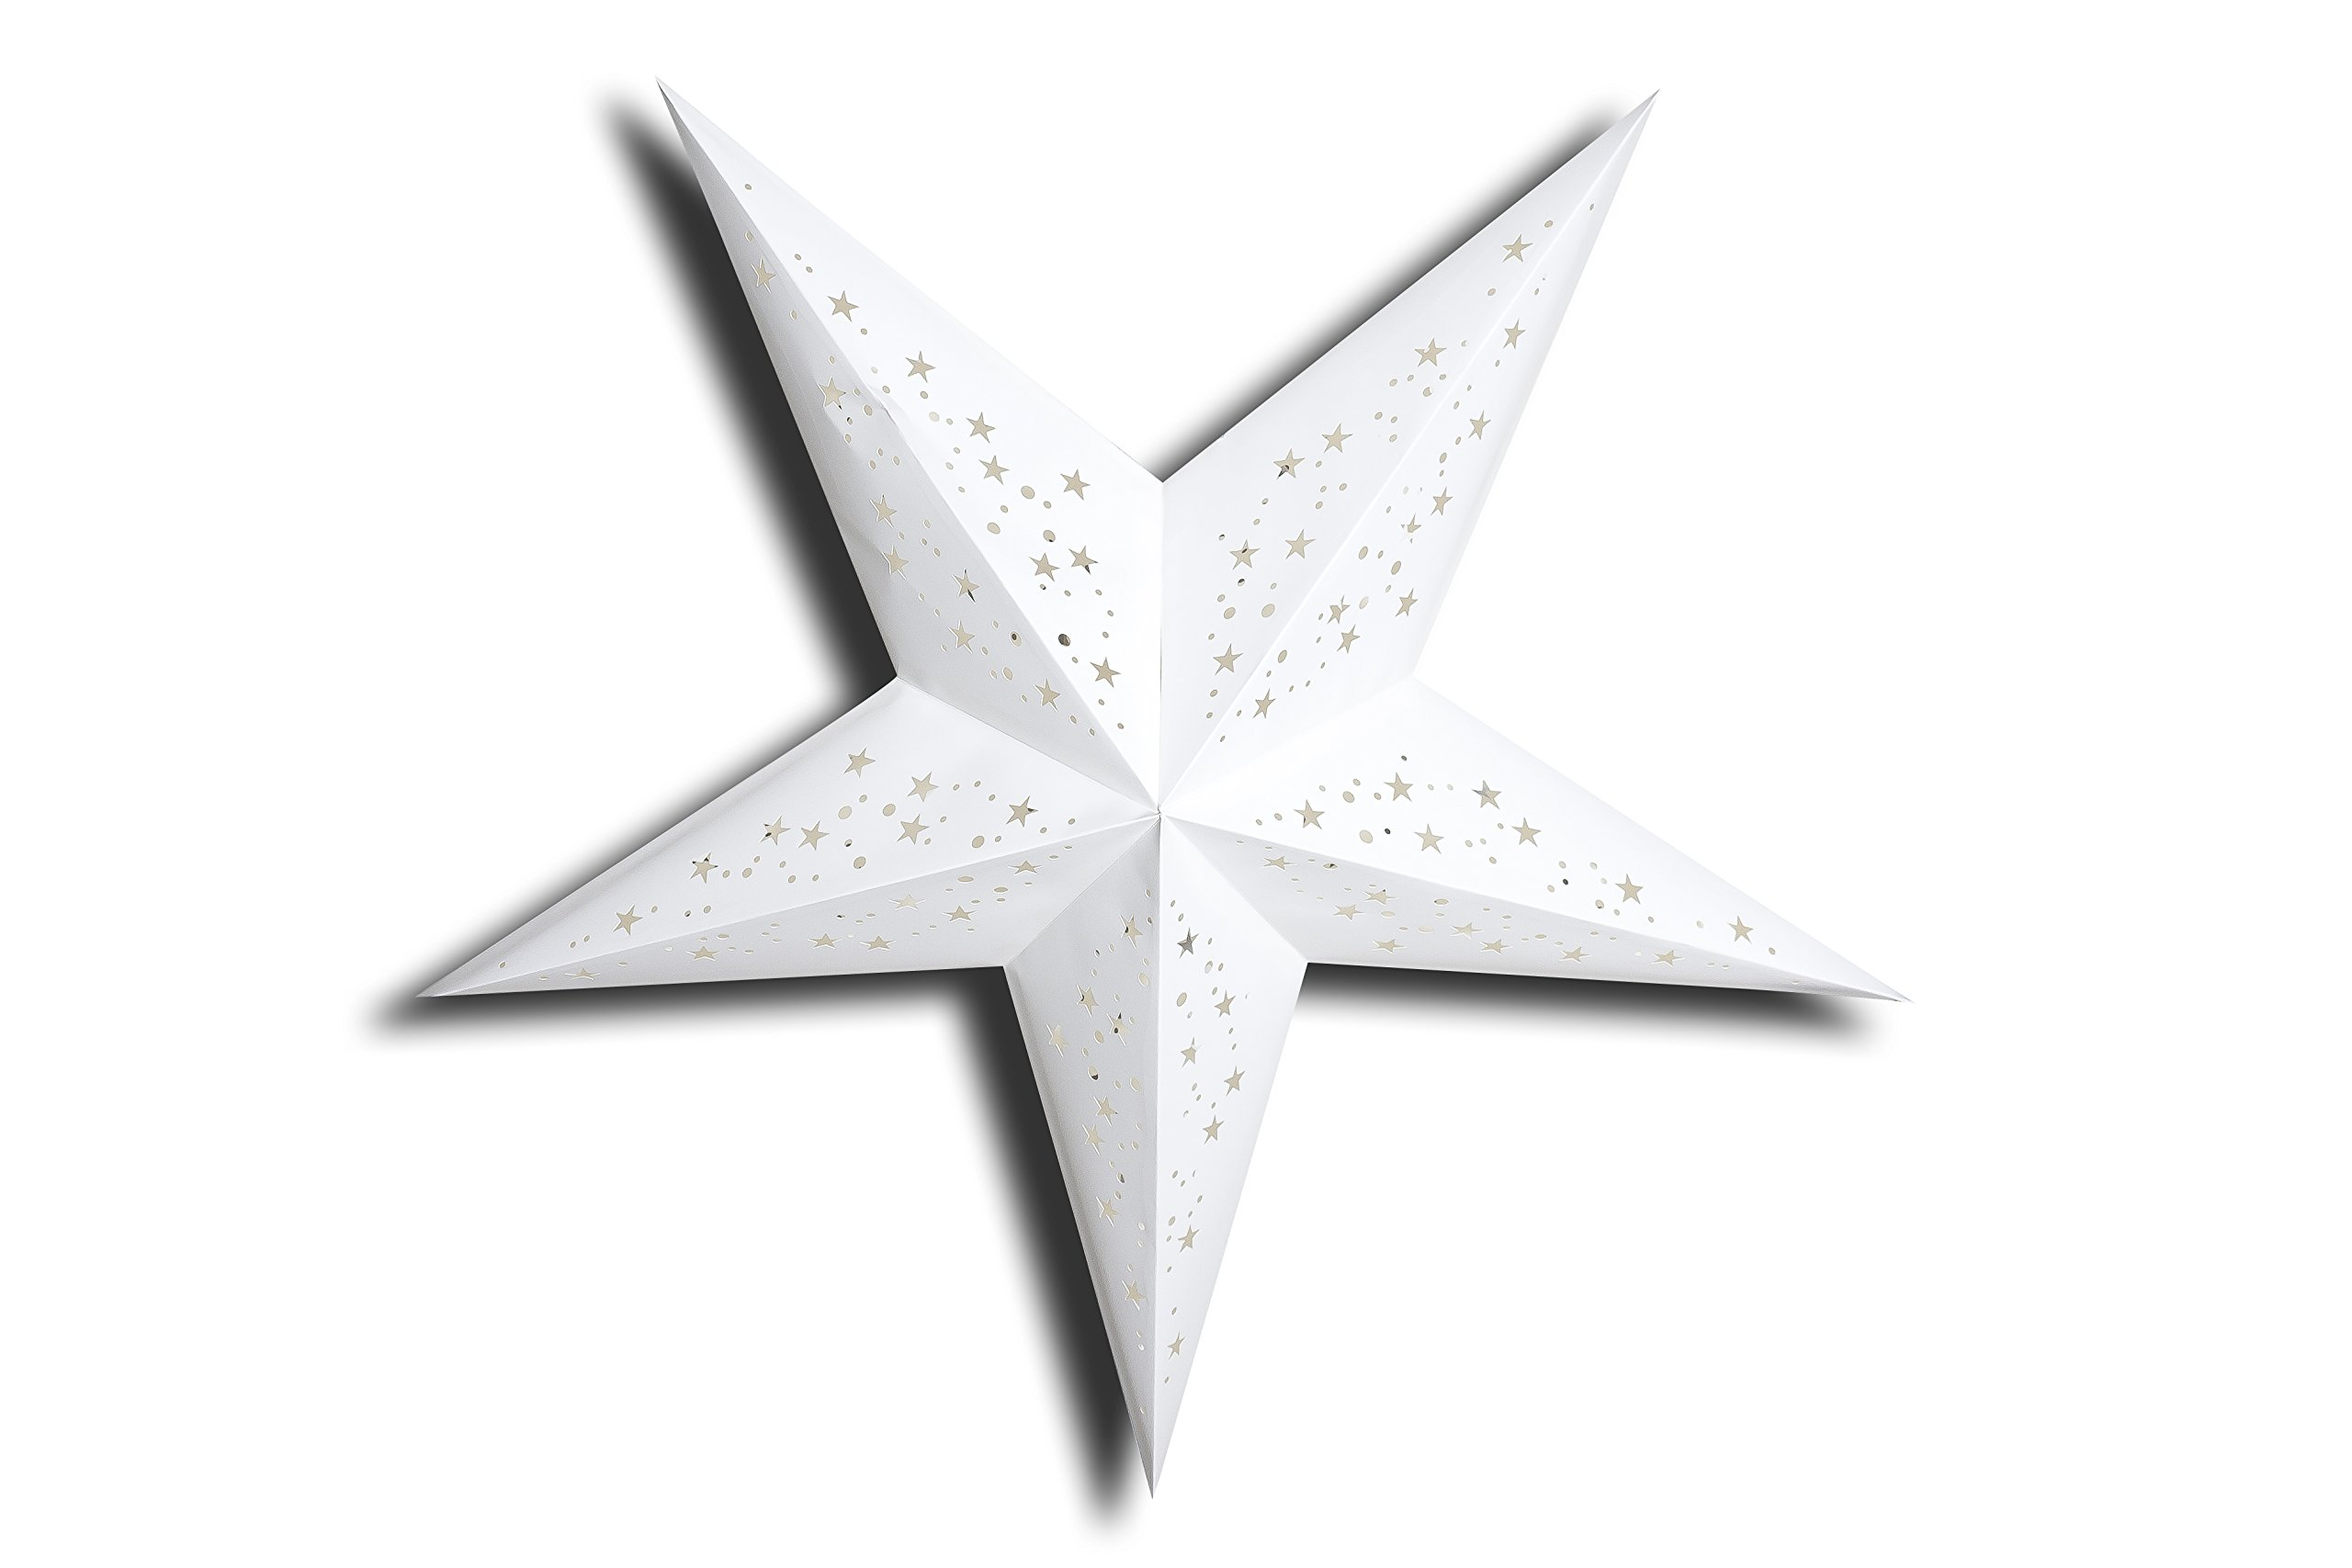 Naxatra - 5 Tips - Paper Lantern Star - Homemade - GalaxyArts (White, Medium) by GalaxyArts (Image #1)